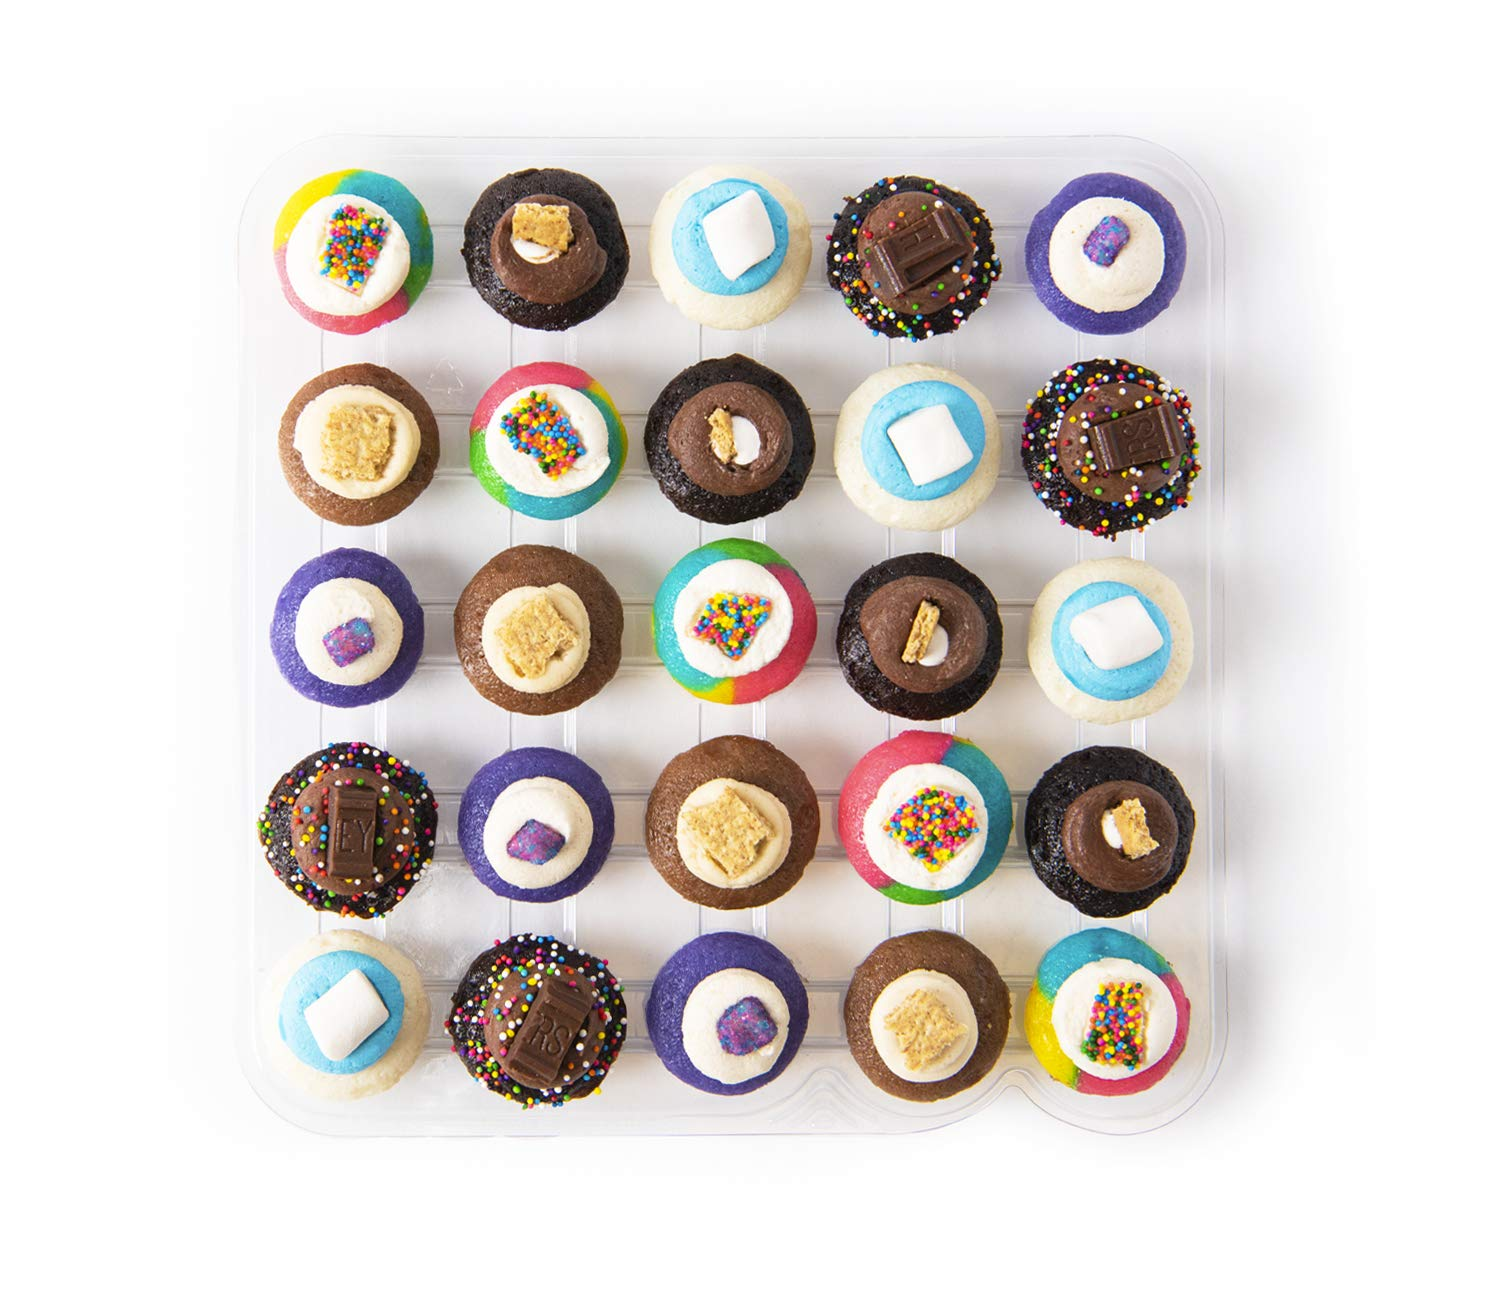 Baked by Melissa Cupcakes Camp Assortment - Assorted Bite-Size Cupcakes (25 Cupcakes)